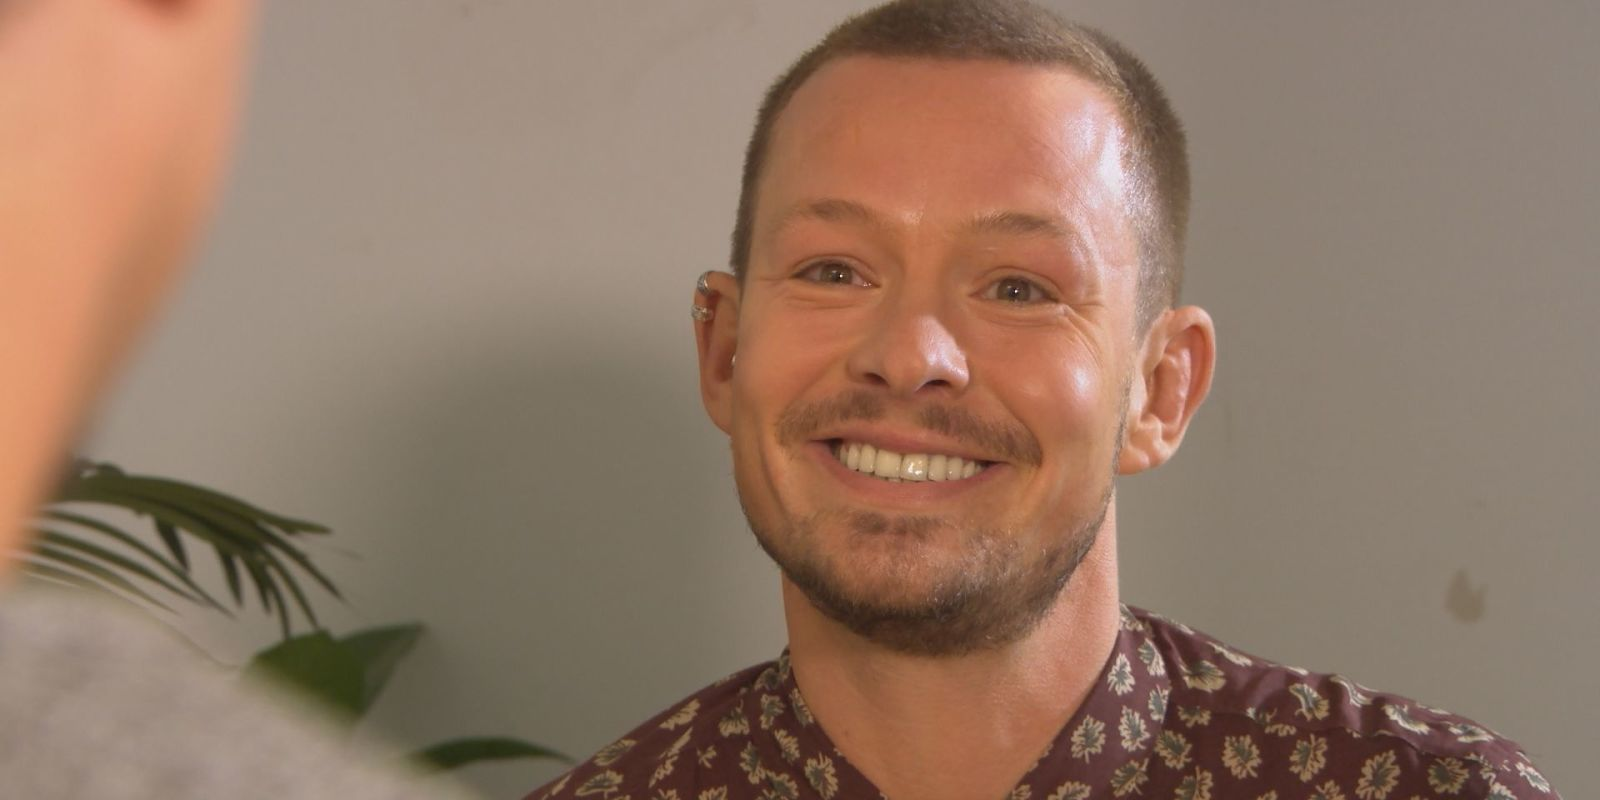 Hollyoaks' Kyle Kelly tries to manipulate James in latest Sami revenge twist